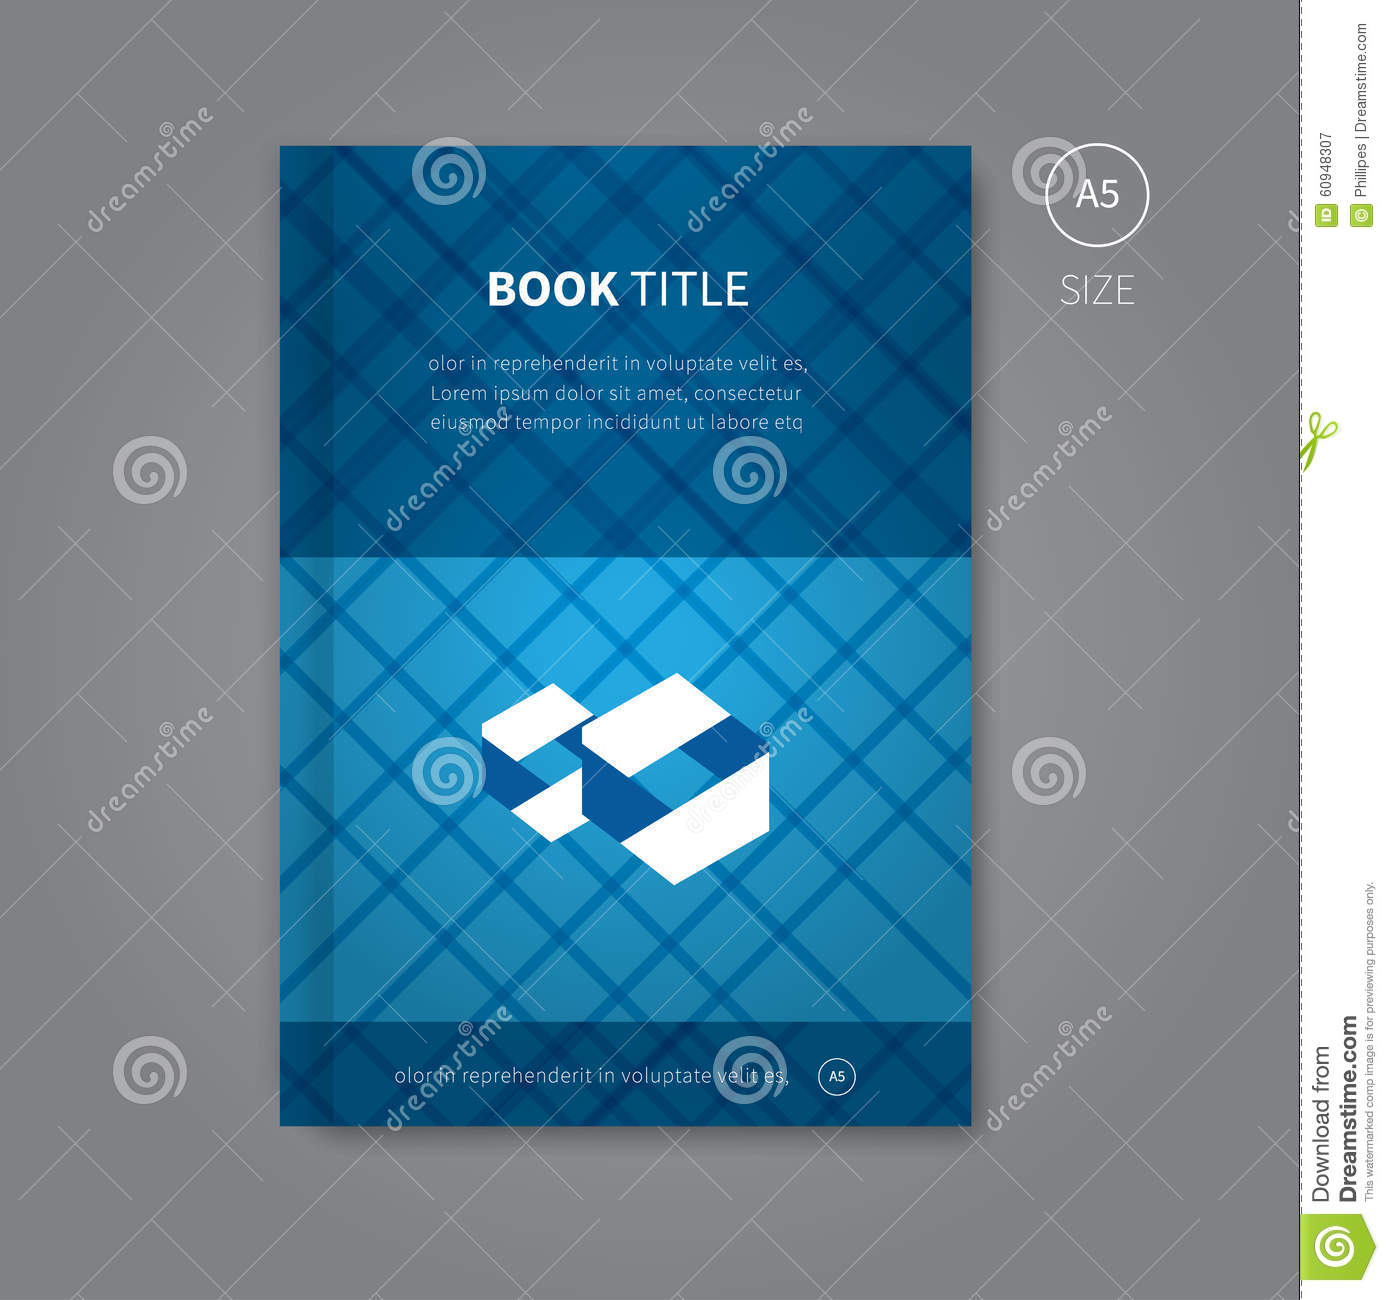 Best Book Cover Vector ~ Book cover design with blue pattern stock vector image